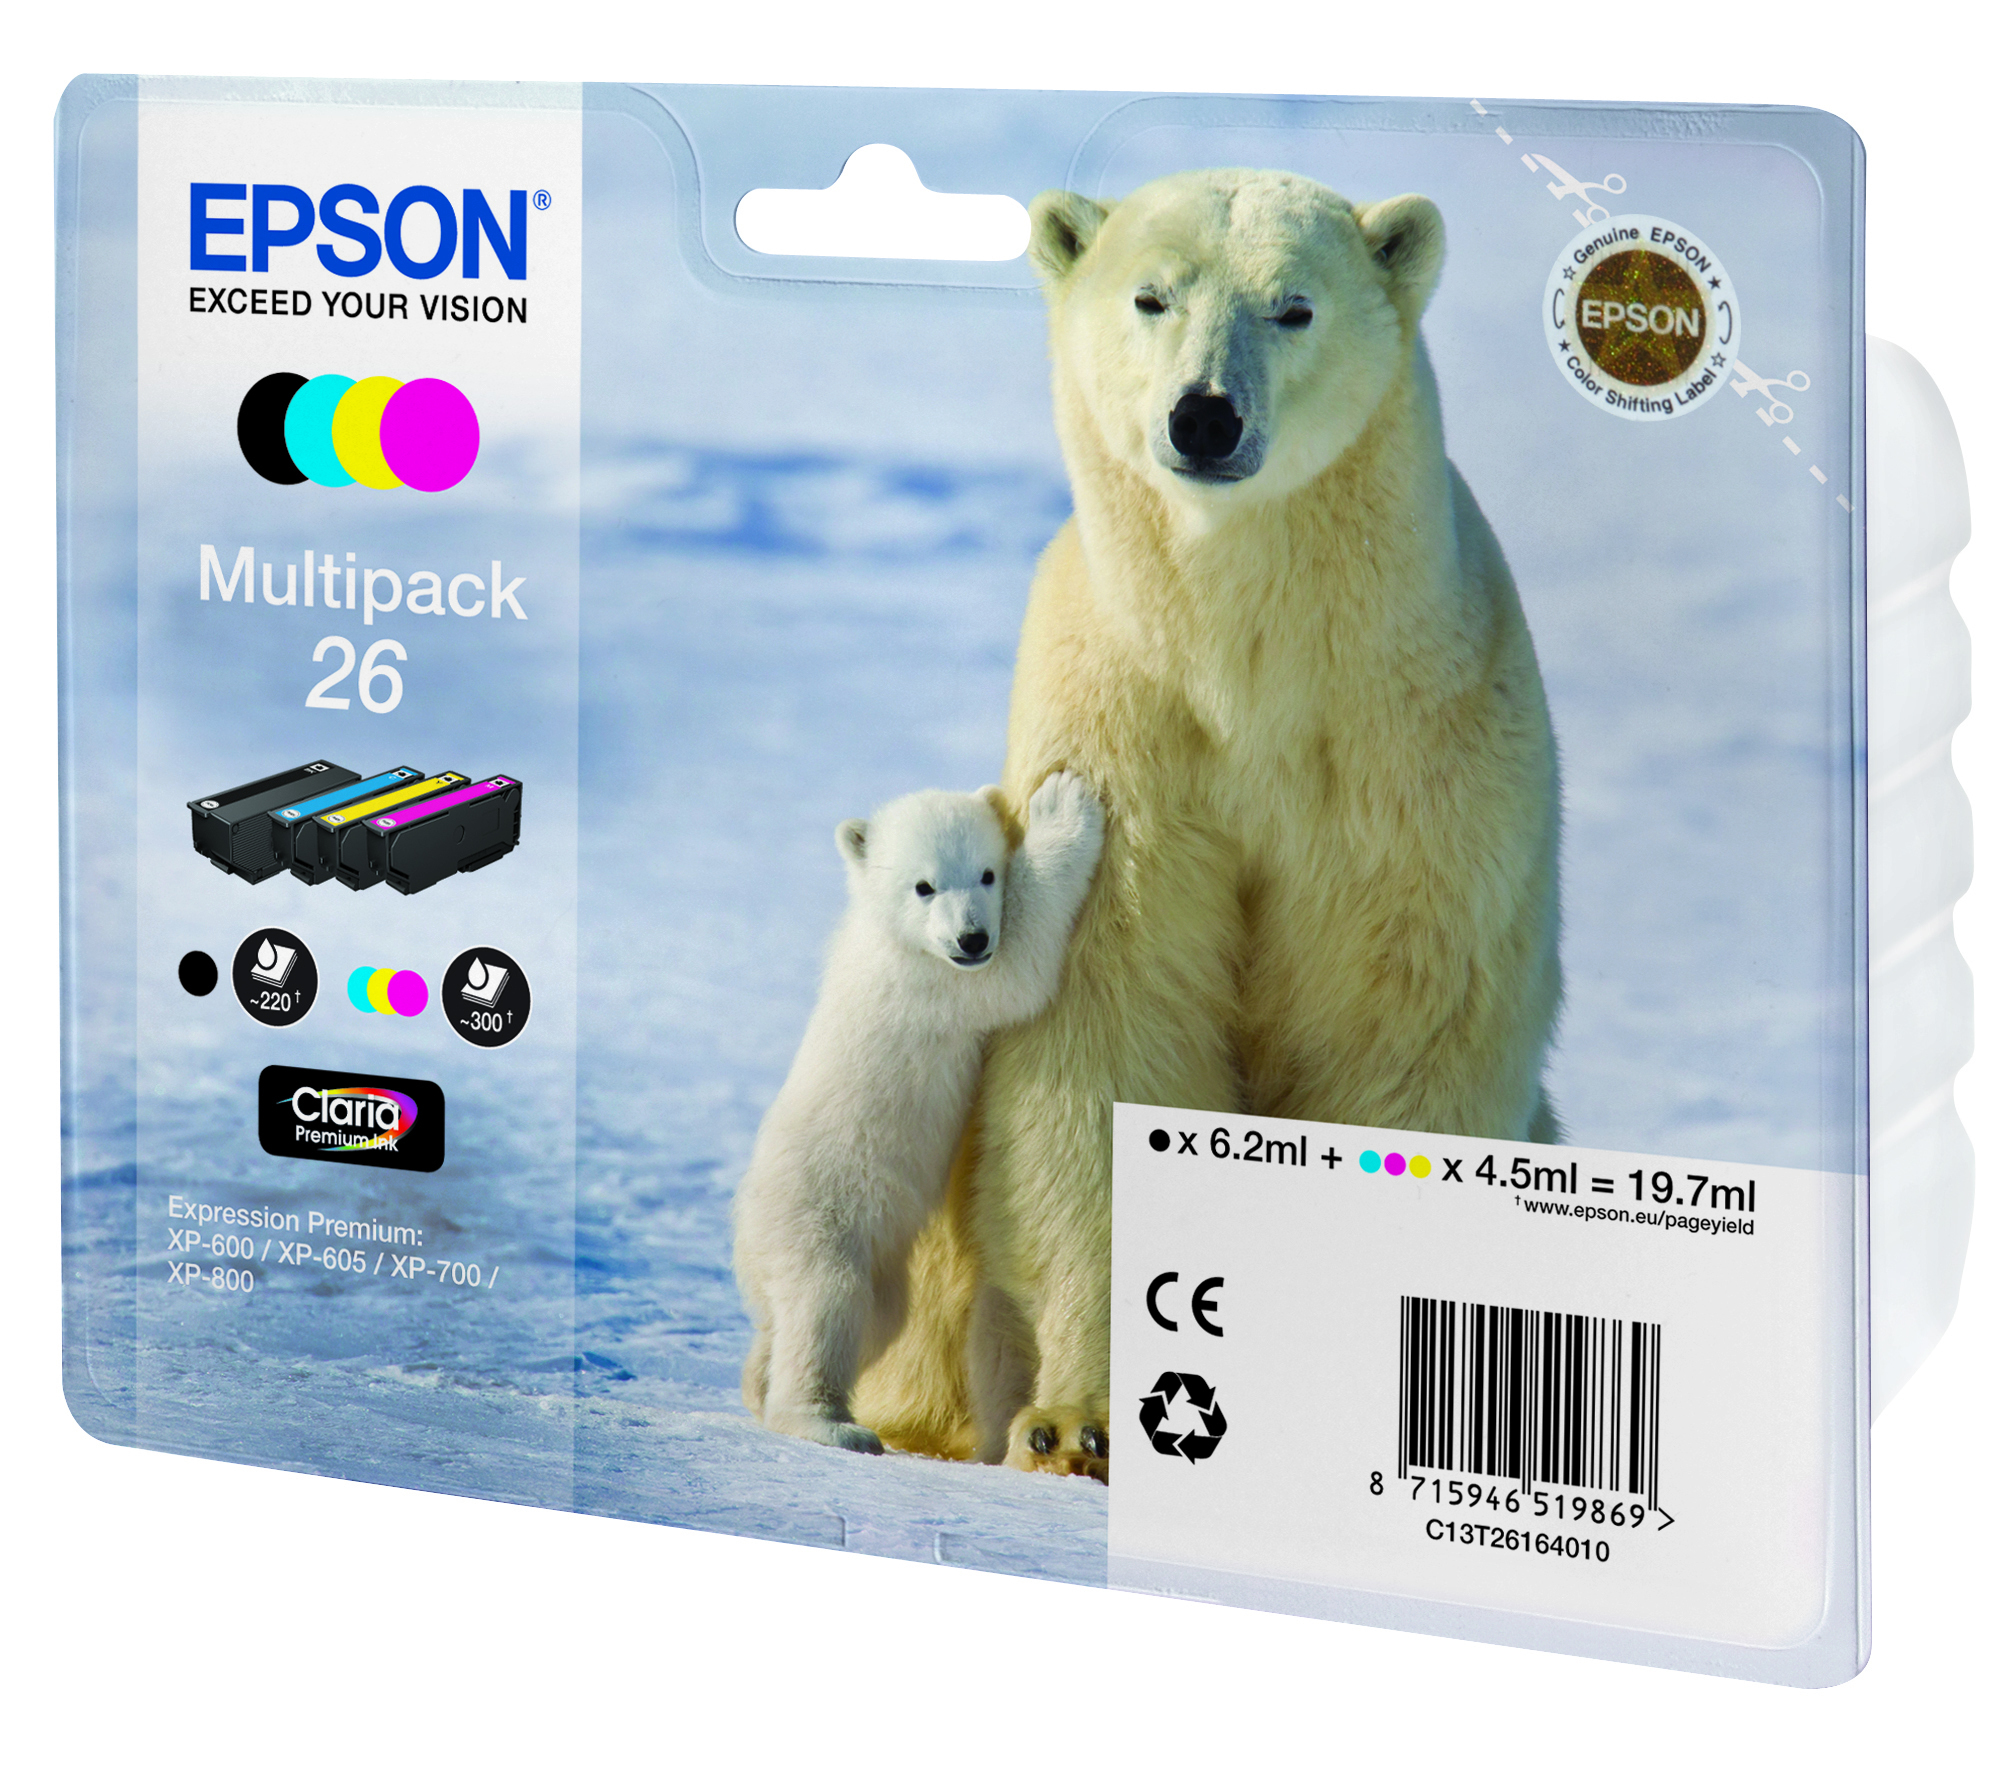 Epson-C13T26164020-Polar-bear-Multipack-4-colours-26-Claria-Premium-Ink thumbnail 2